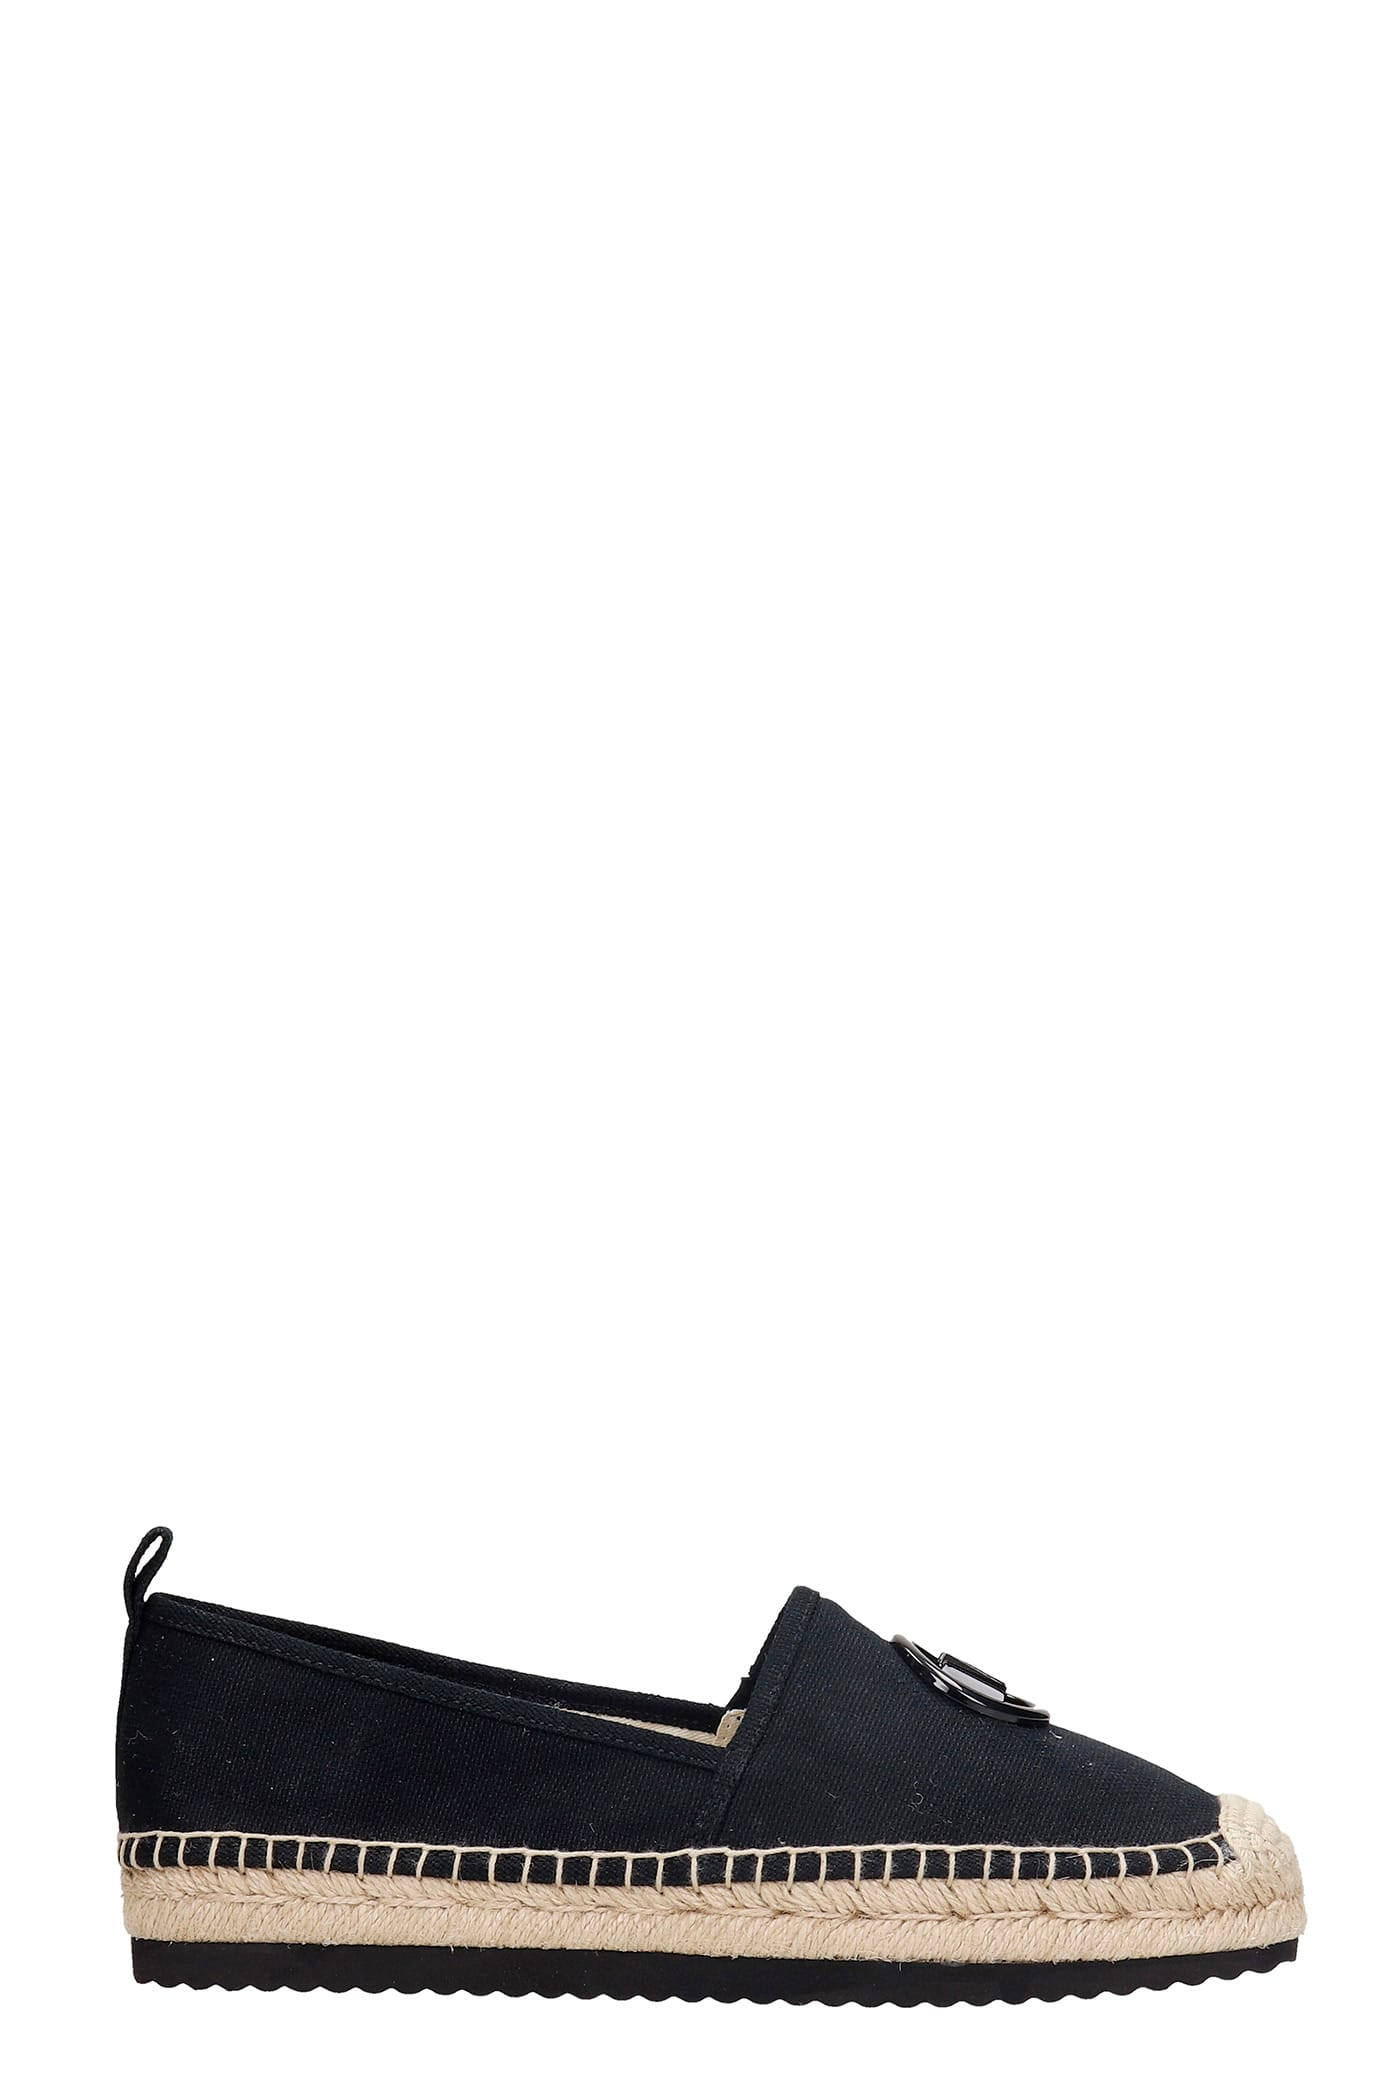 Michael Kors LENNY ESPADRILLES IN BLACK CANVAS